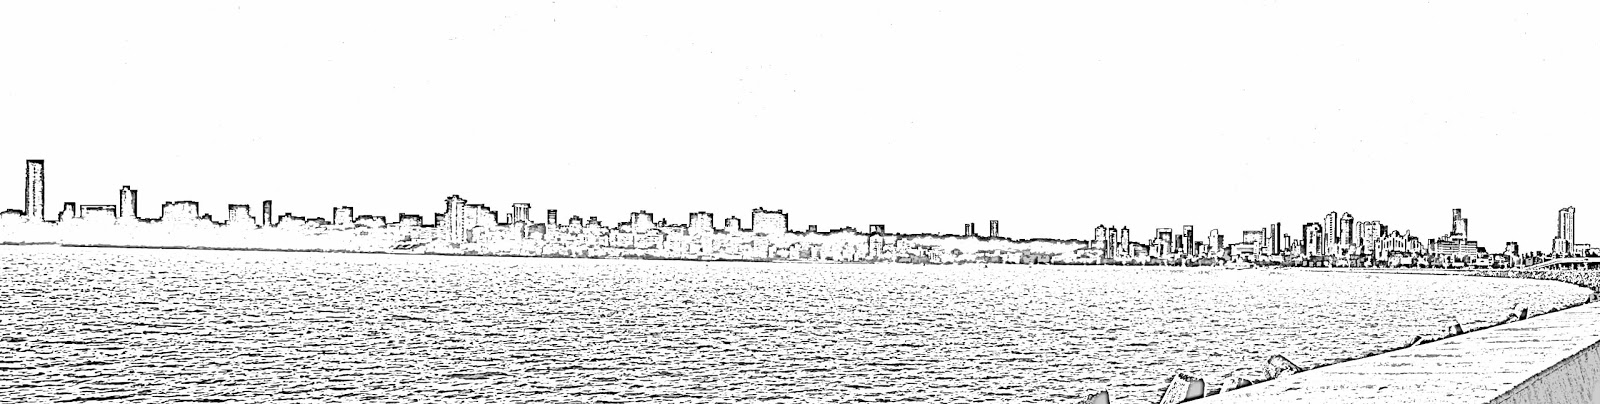 city skyline drawing. Skyline as seen from